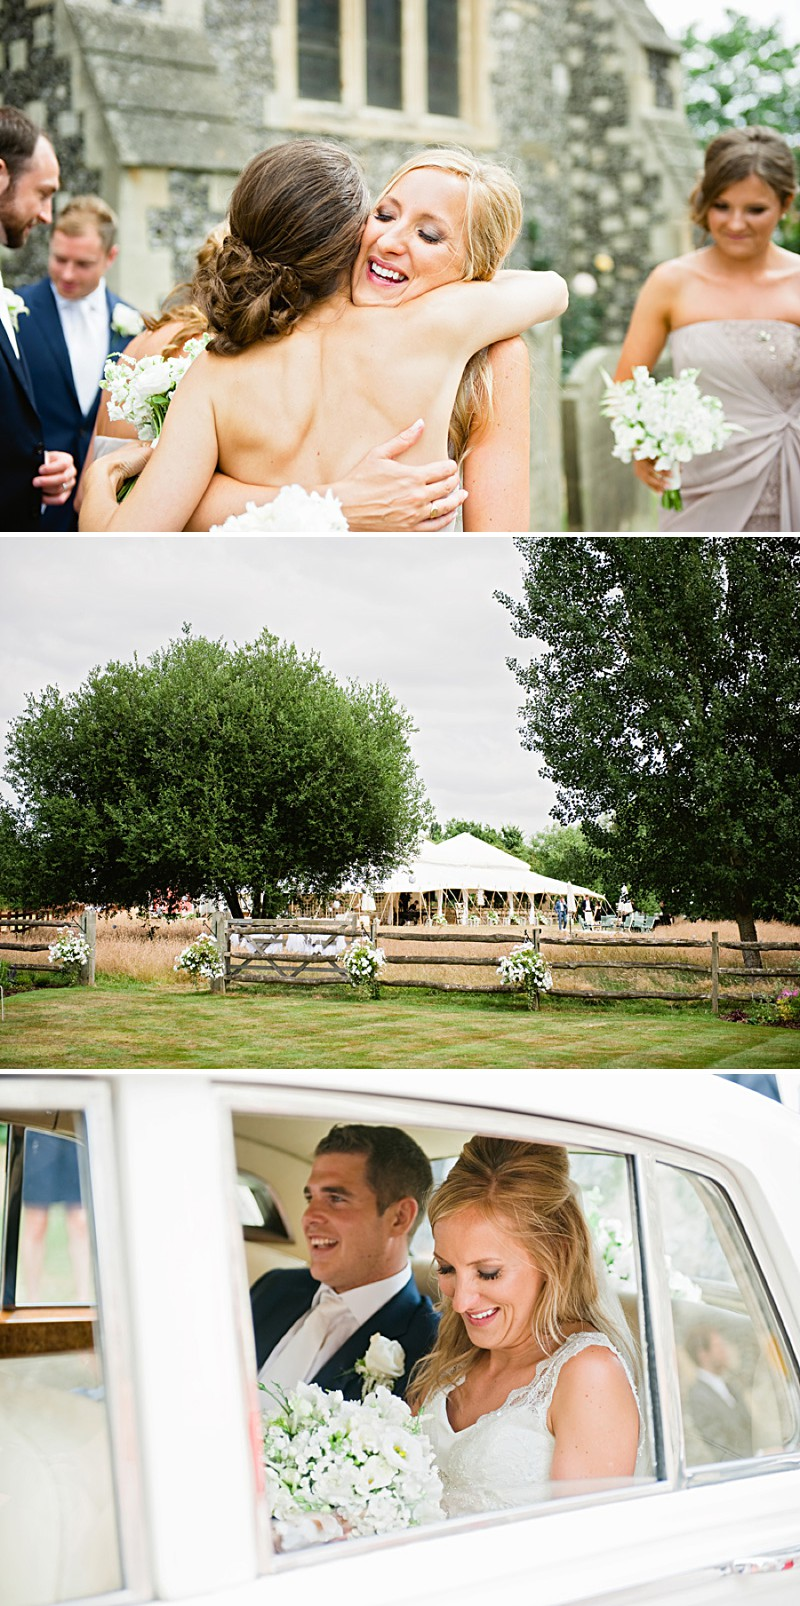 A Contemporary And Modern Garden Marquee Wedding With A Green And White Colour Scheme And A Stephanie Allin Dress And Jimmy Choos With Photography By Dominique Bader._0004